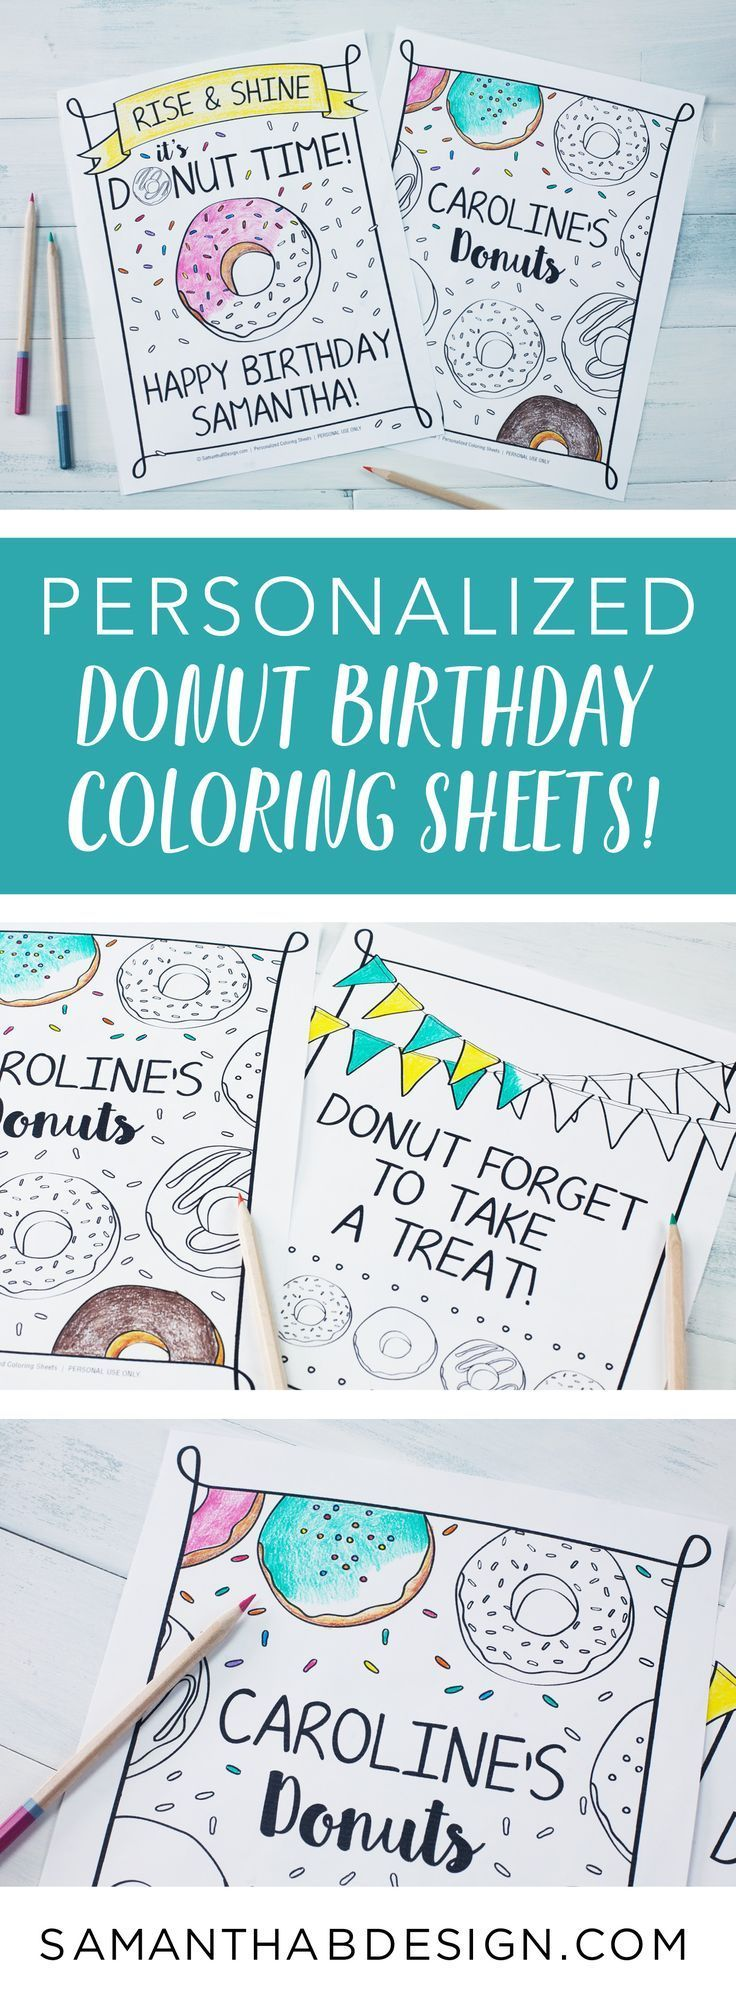 Donut coloring sheets make a great donut party activity or party